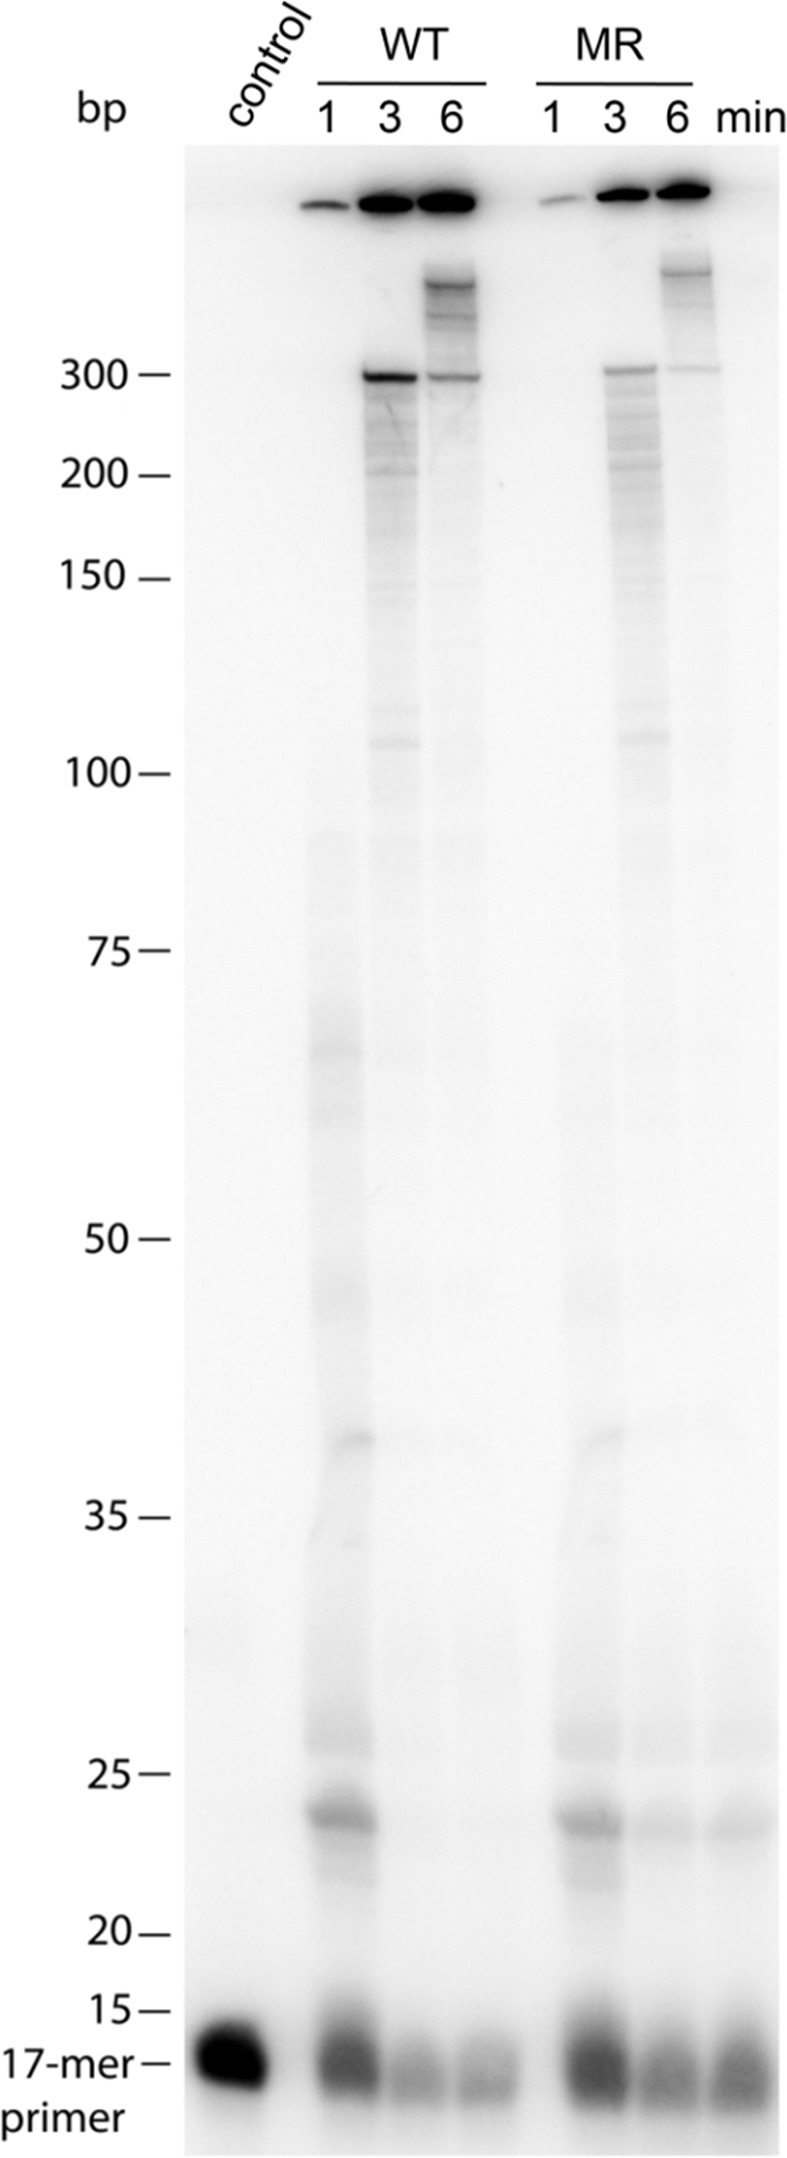 <t>DNA-dependent</t> DNA polymerase activity of subtype CRF02_AG WT and MR-RTs. Reactions were carried out at 37°C for the times indicated on top of the gel with 30 nM [ 32 P]-P 17 <t>/M13mp18,</t> 200 μM of each dNTP and 83 nM WT or MR-RT, or without RT (control) in a reaction volume of 10 μl. Extension products were analyzed by denaturing gel electrophoresis on a 10% sequencing gel and visualized by a phosphoimaging device. DNA size markers are shown on the left.